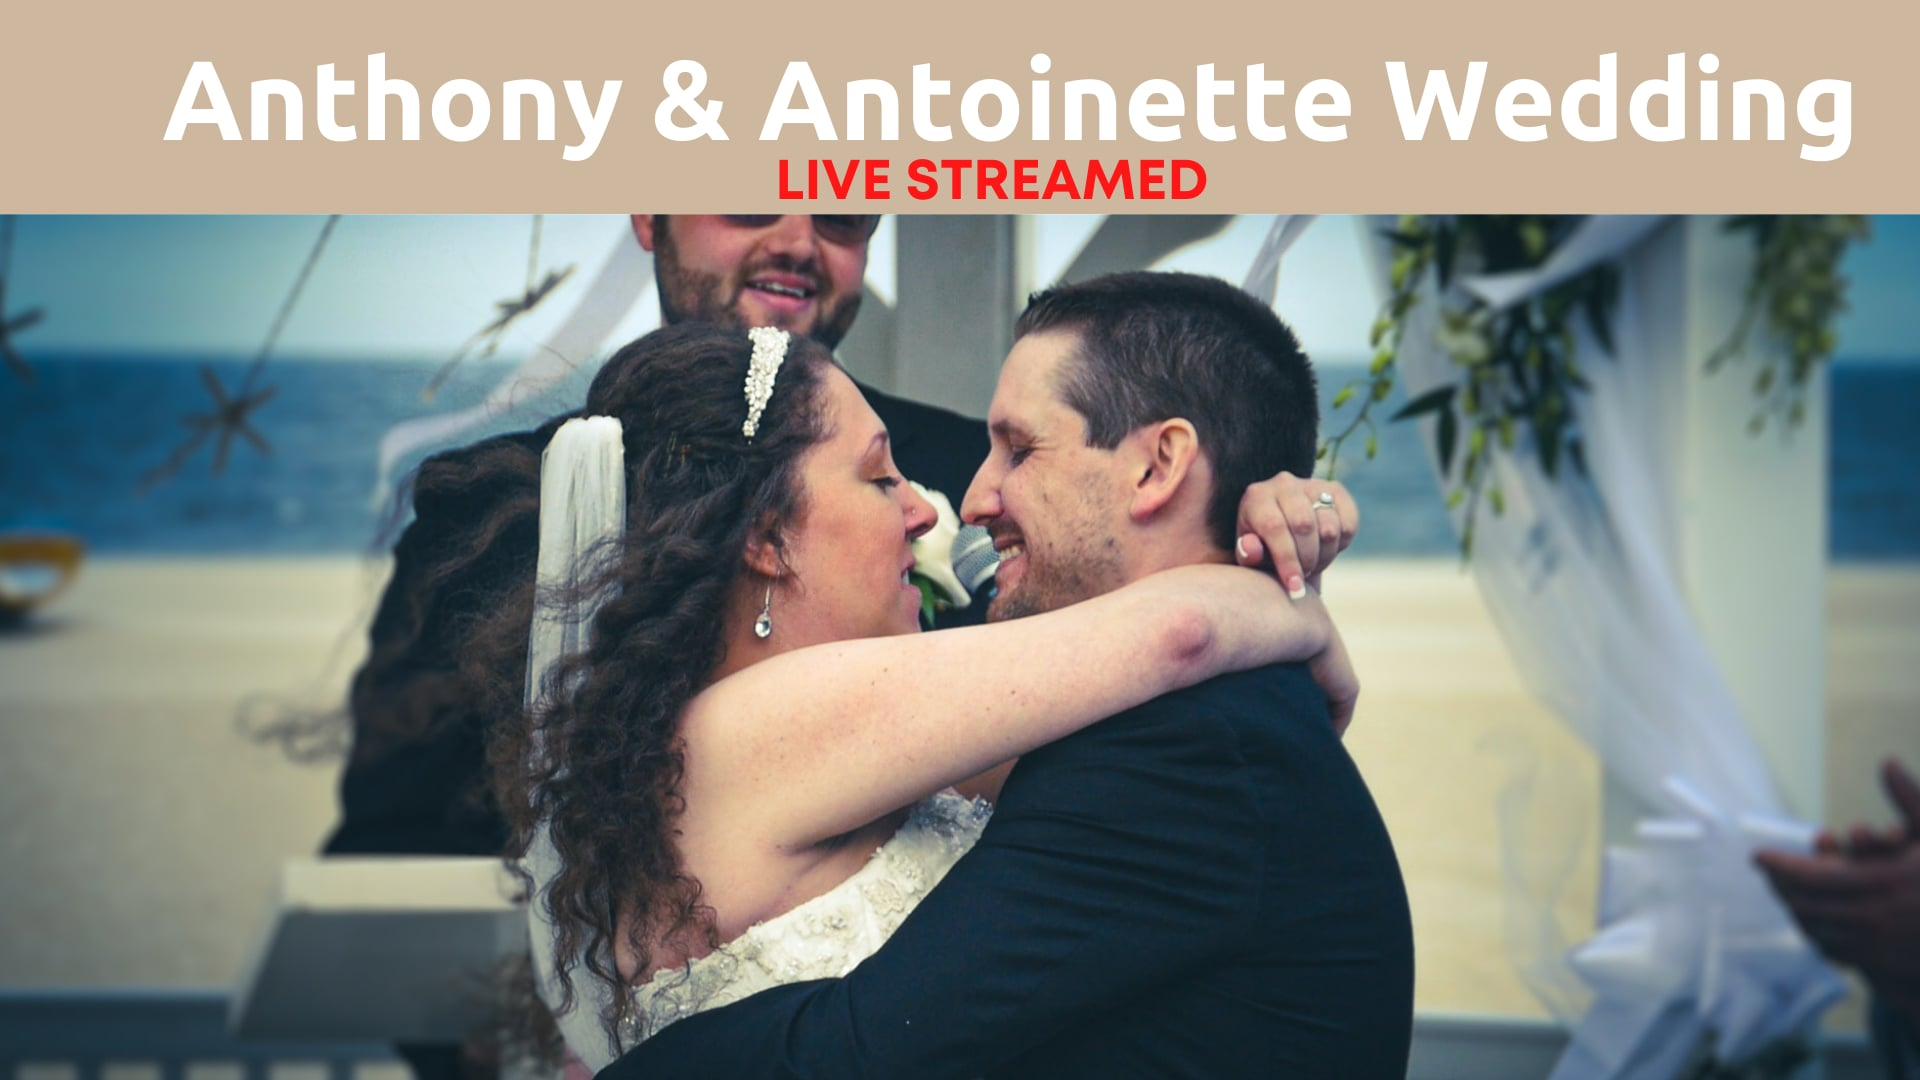 ANTHONY AND ANTOINETTE